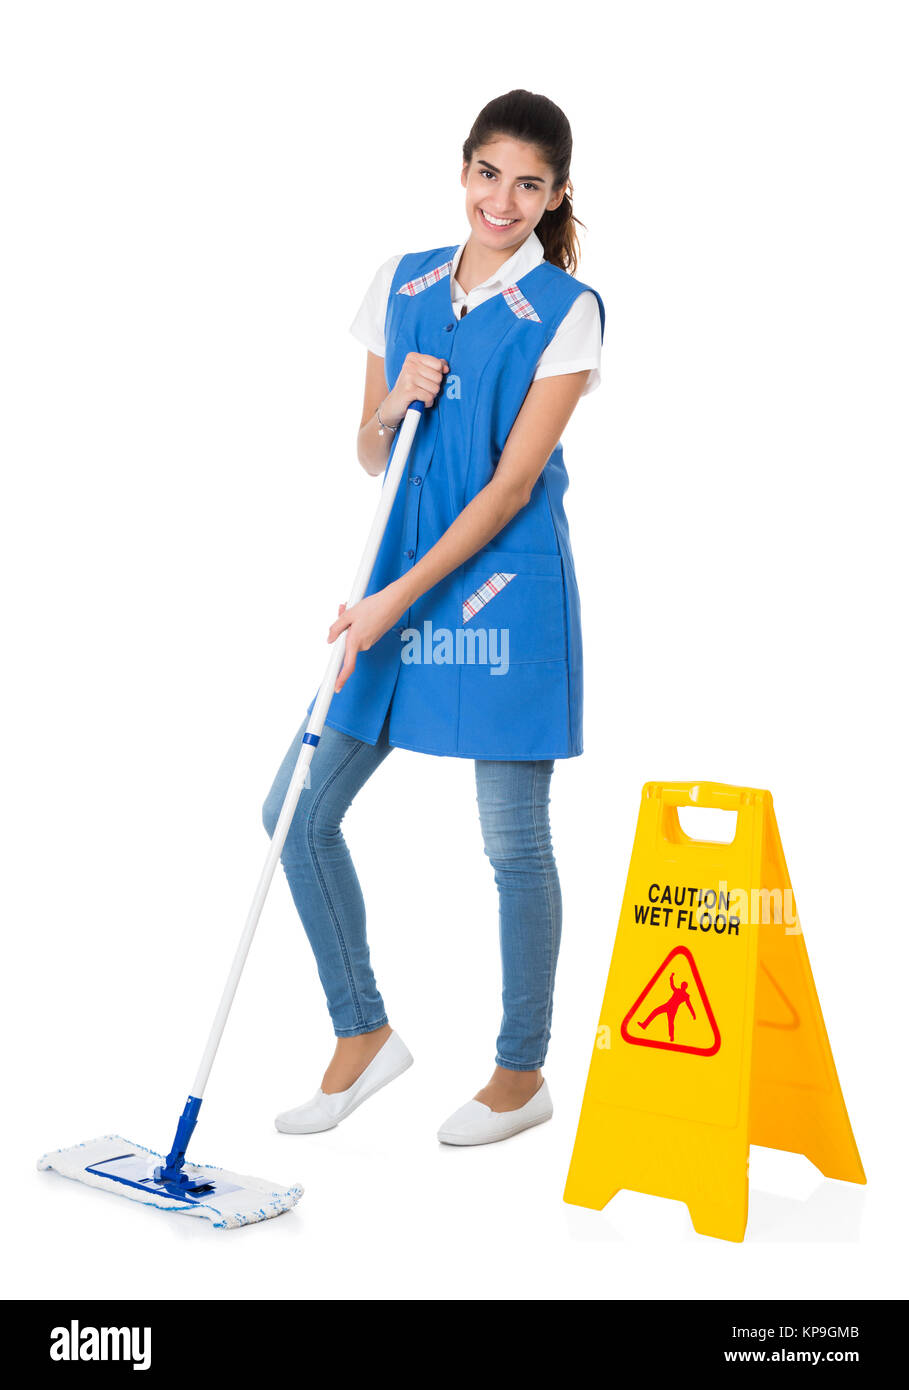 Happy Janitor Mopping By Caution Wet Floor Sign Stock Photo